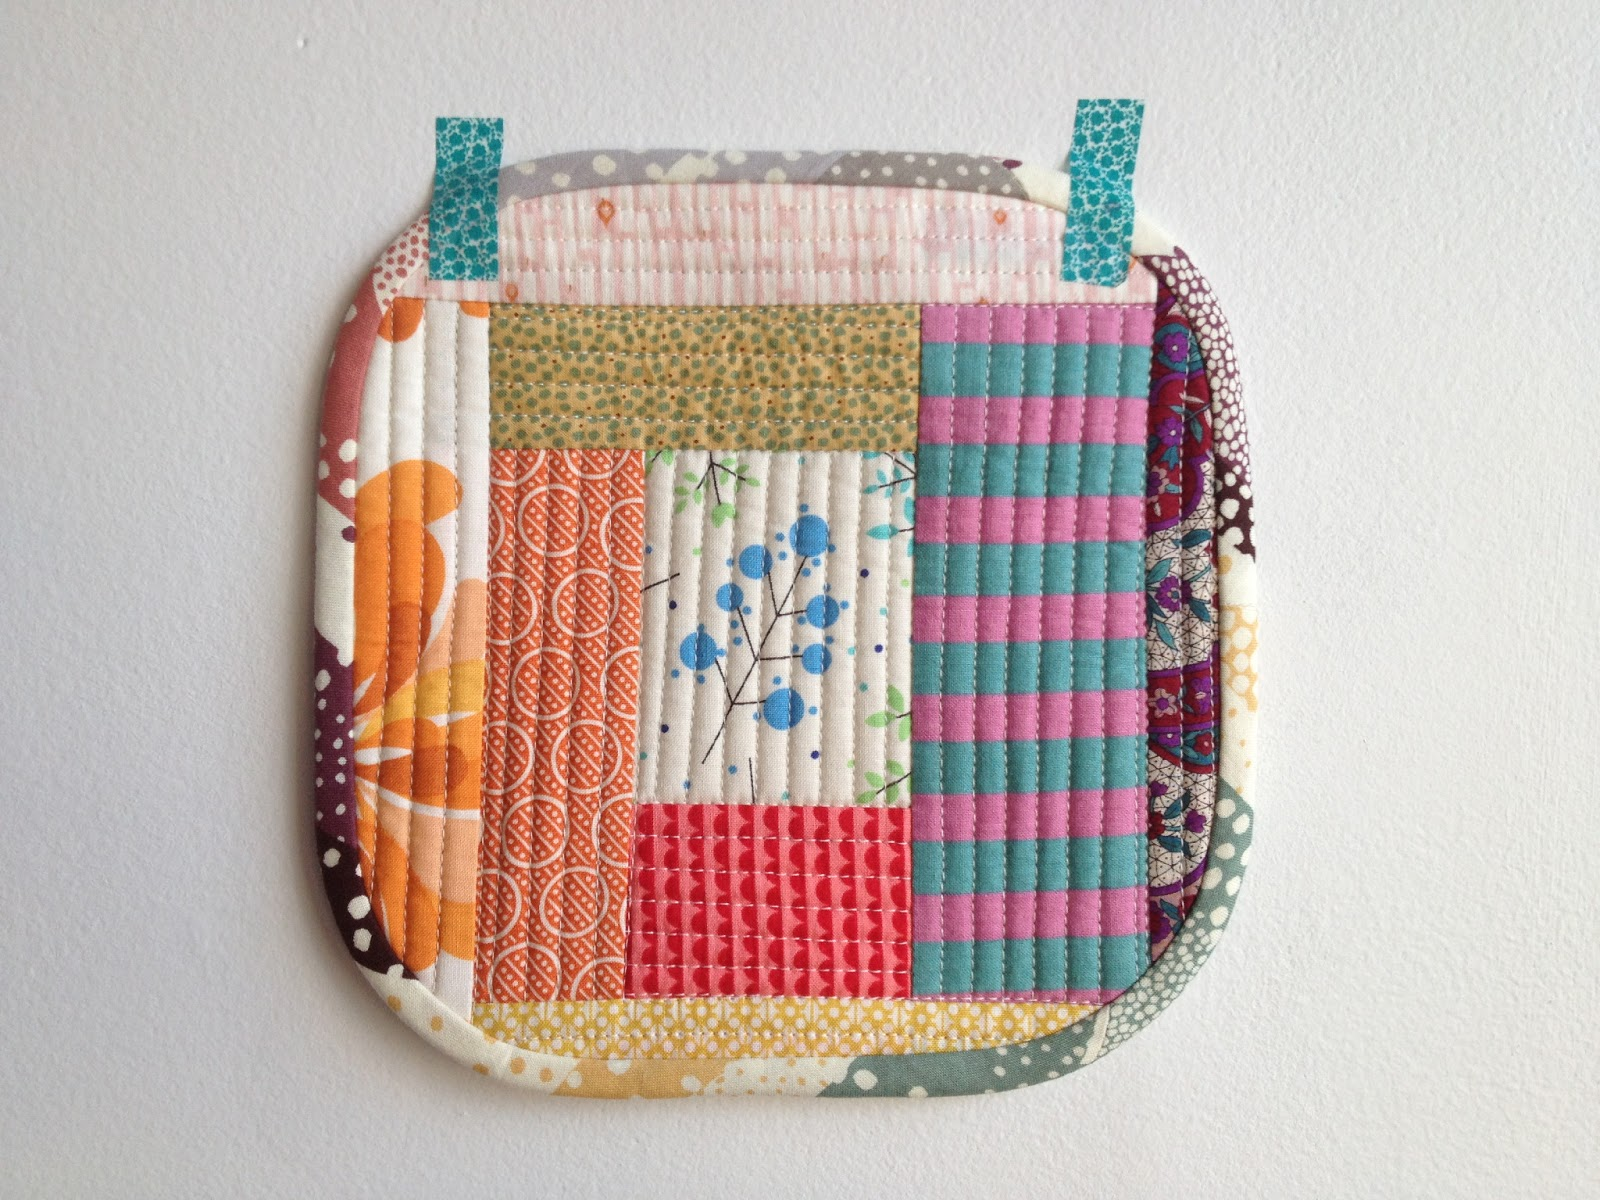 Salty oat modern handmade quilts rounded corners a for Best out of waste for class 5